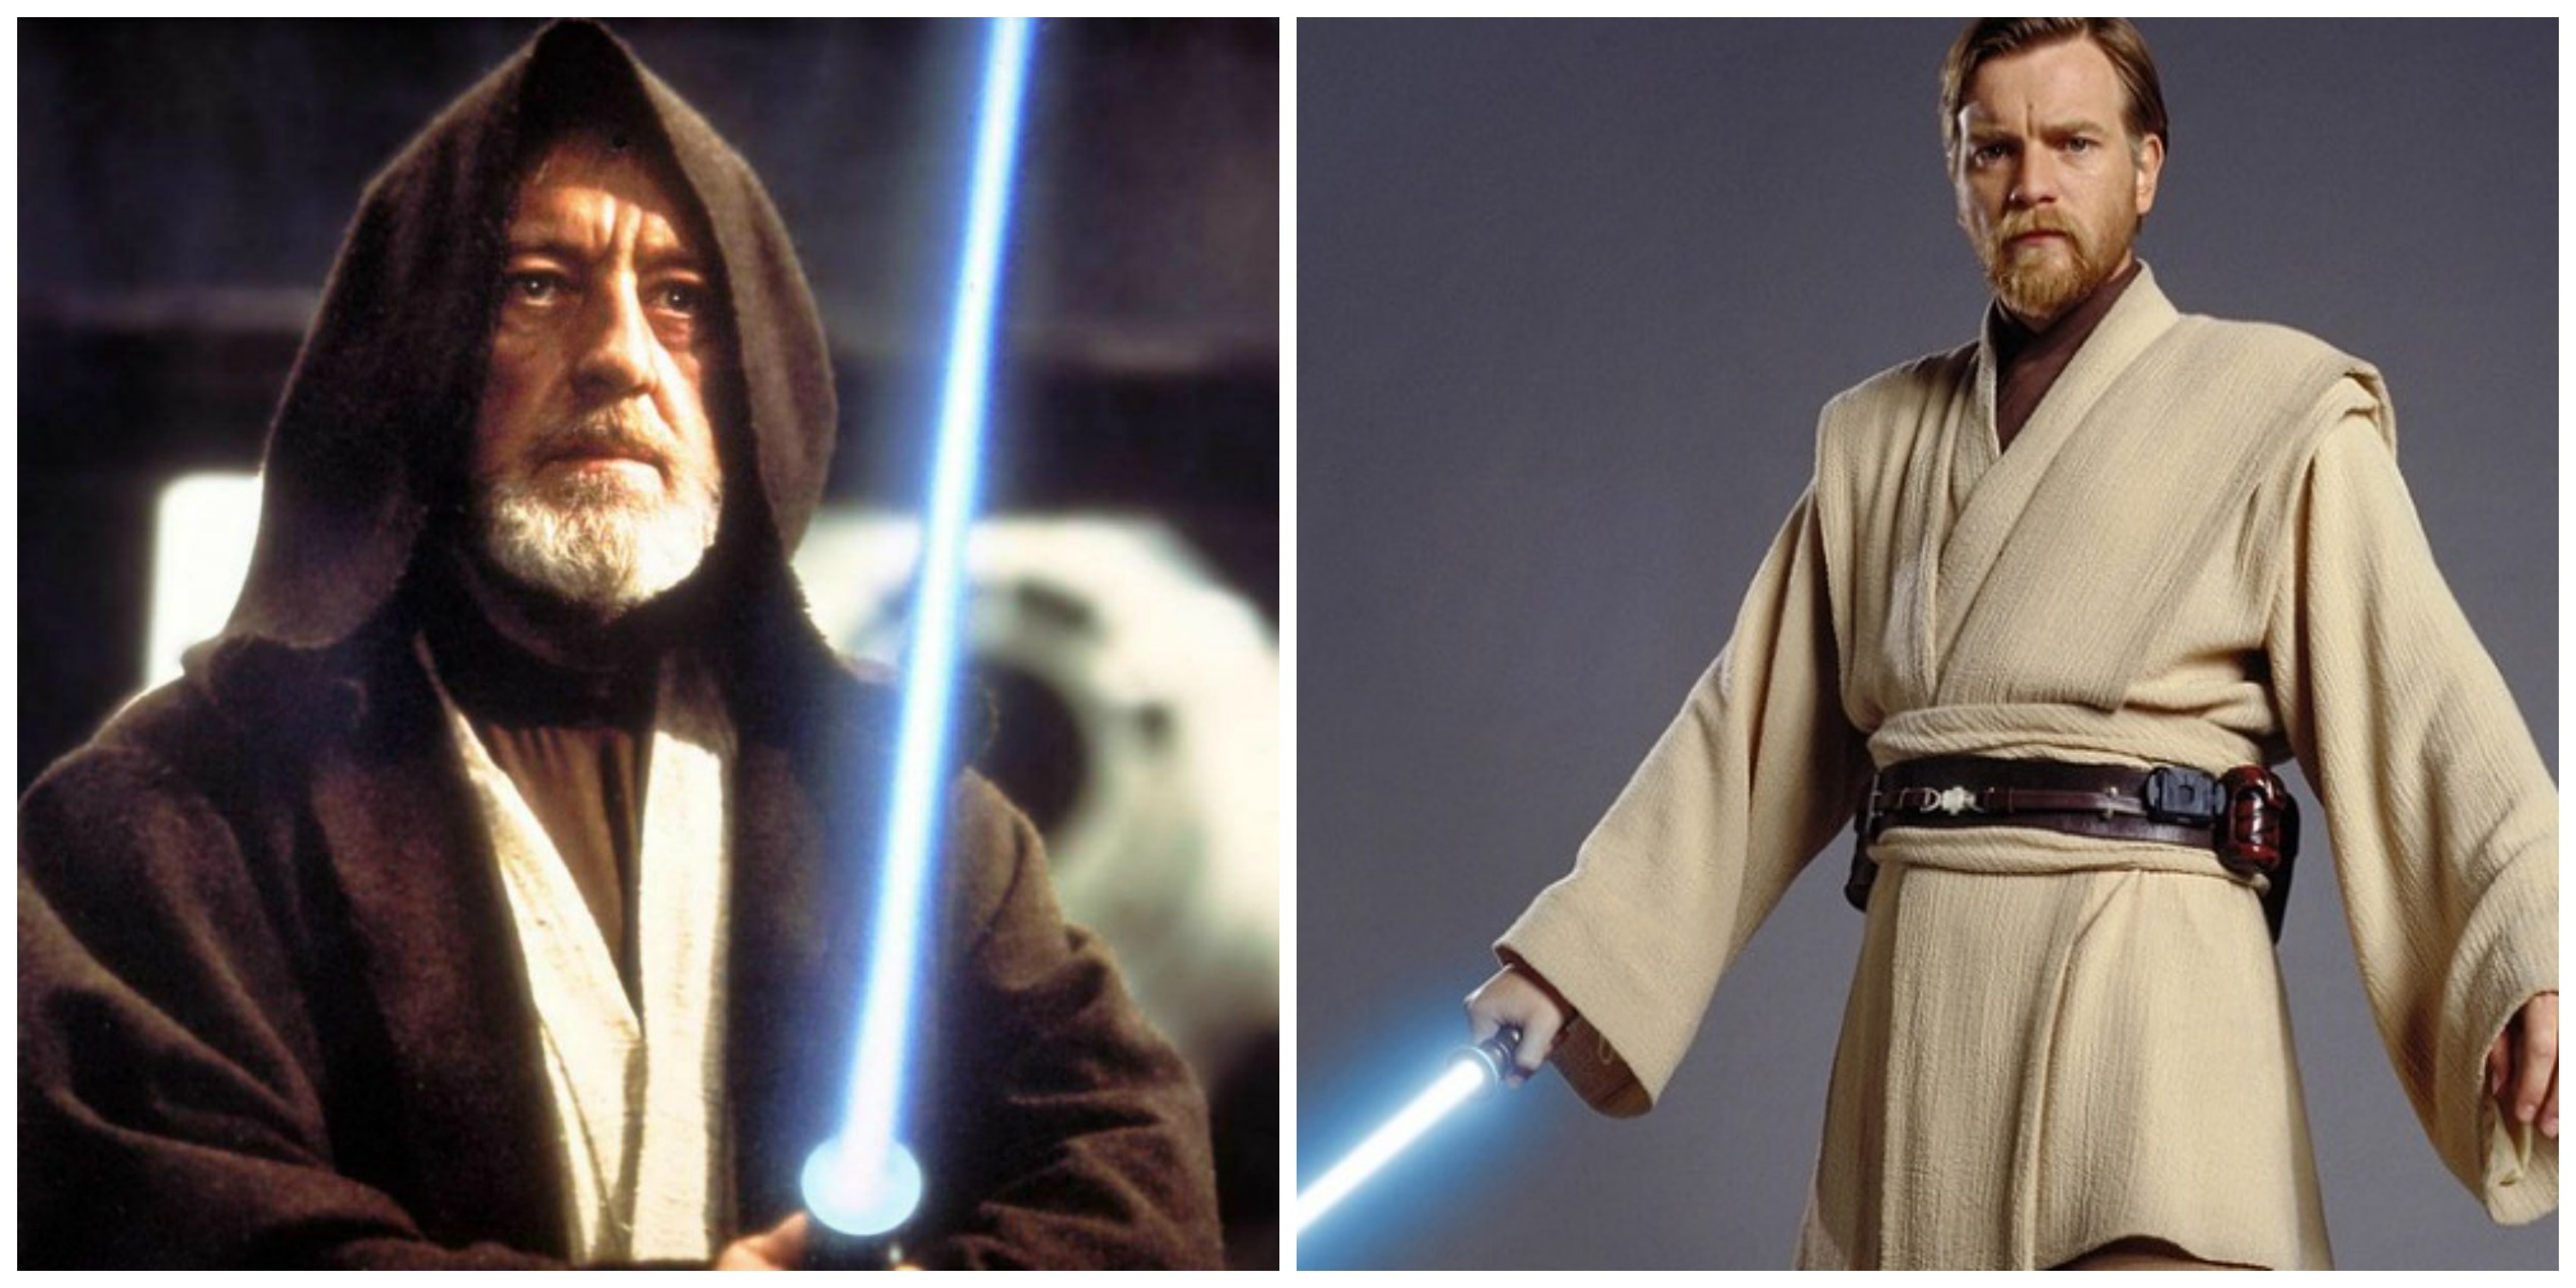 Lucasfilm Confirms An 'Obi-Wan Kenobi' Stand-Alone Film Is In The Works